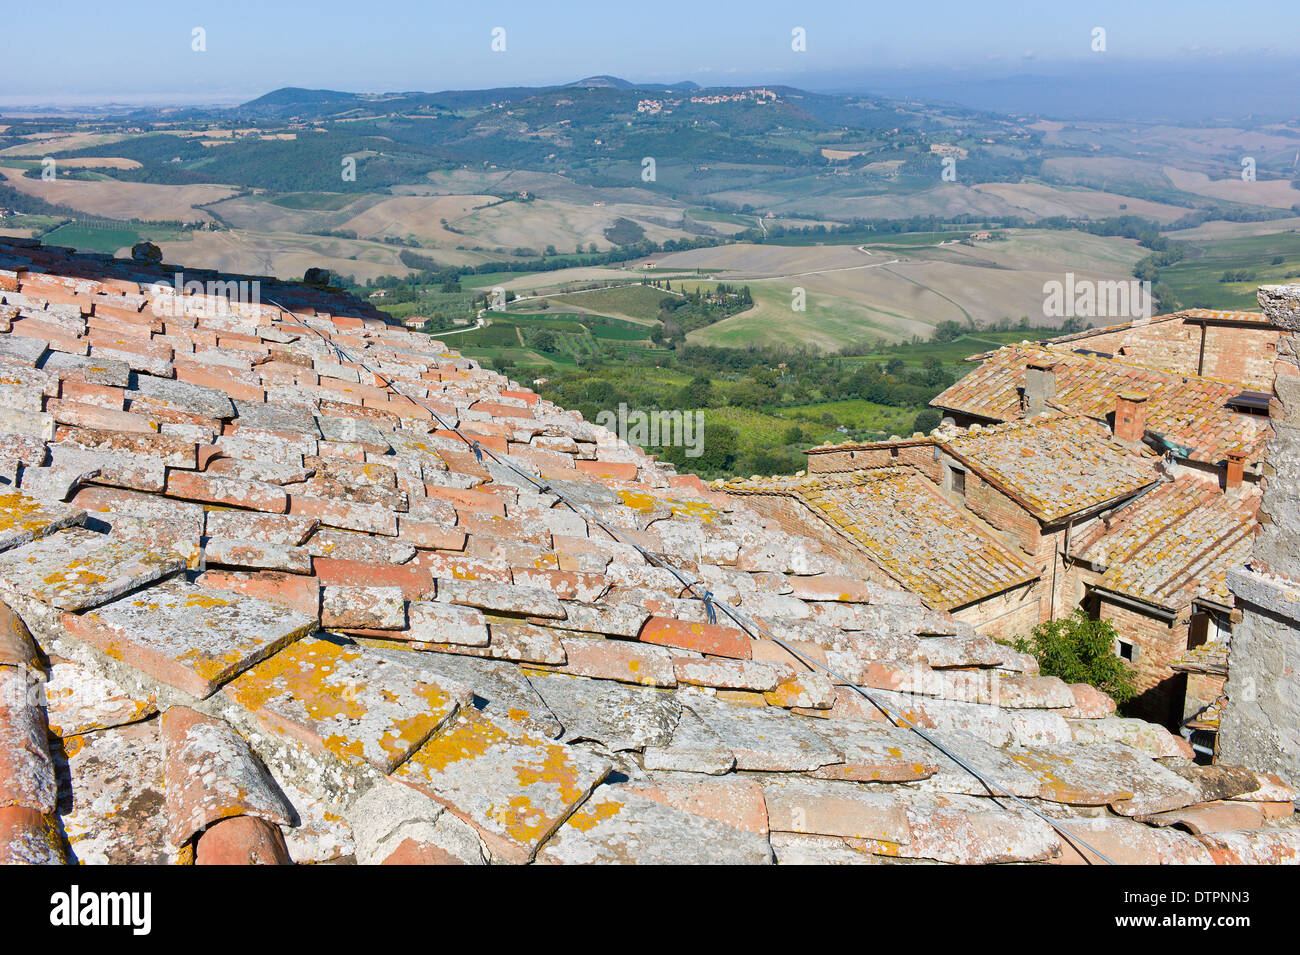 View from the rooftop of the Palazzo Comunale in the hill town of Montepulciano, Tuscany, Italy - Stock Image